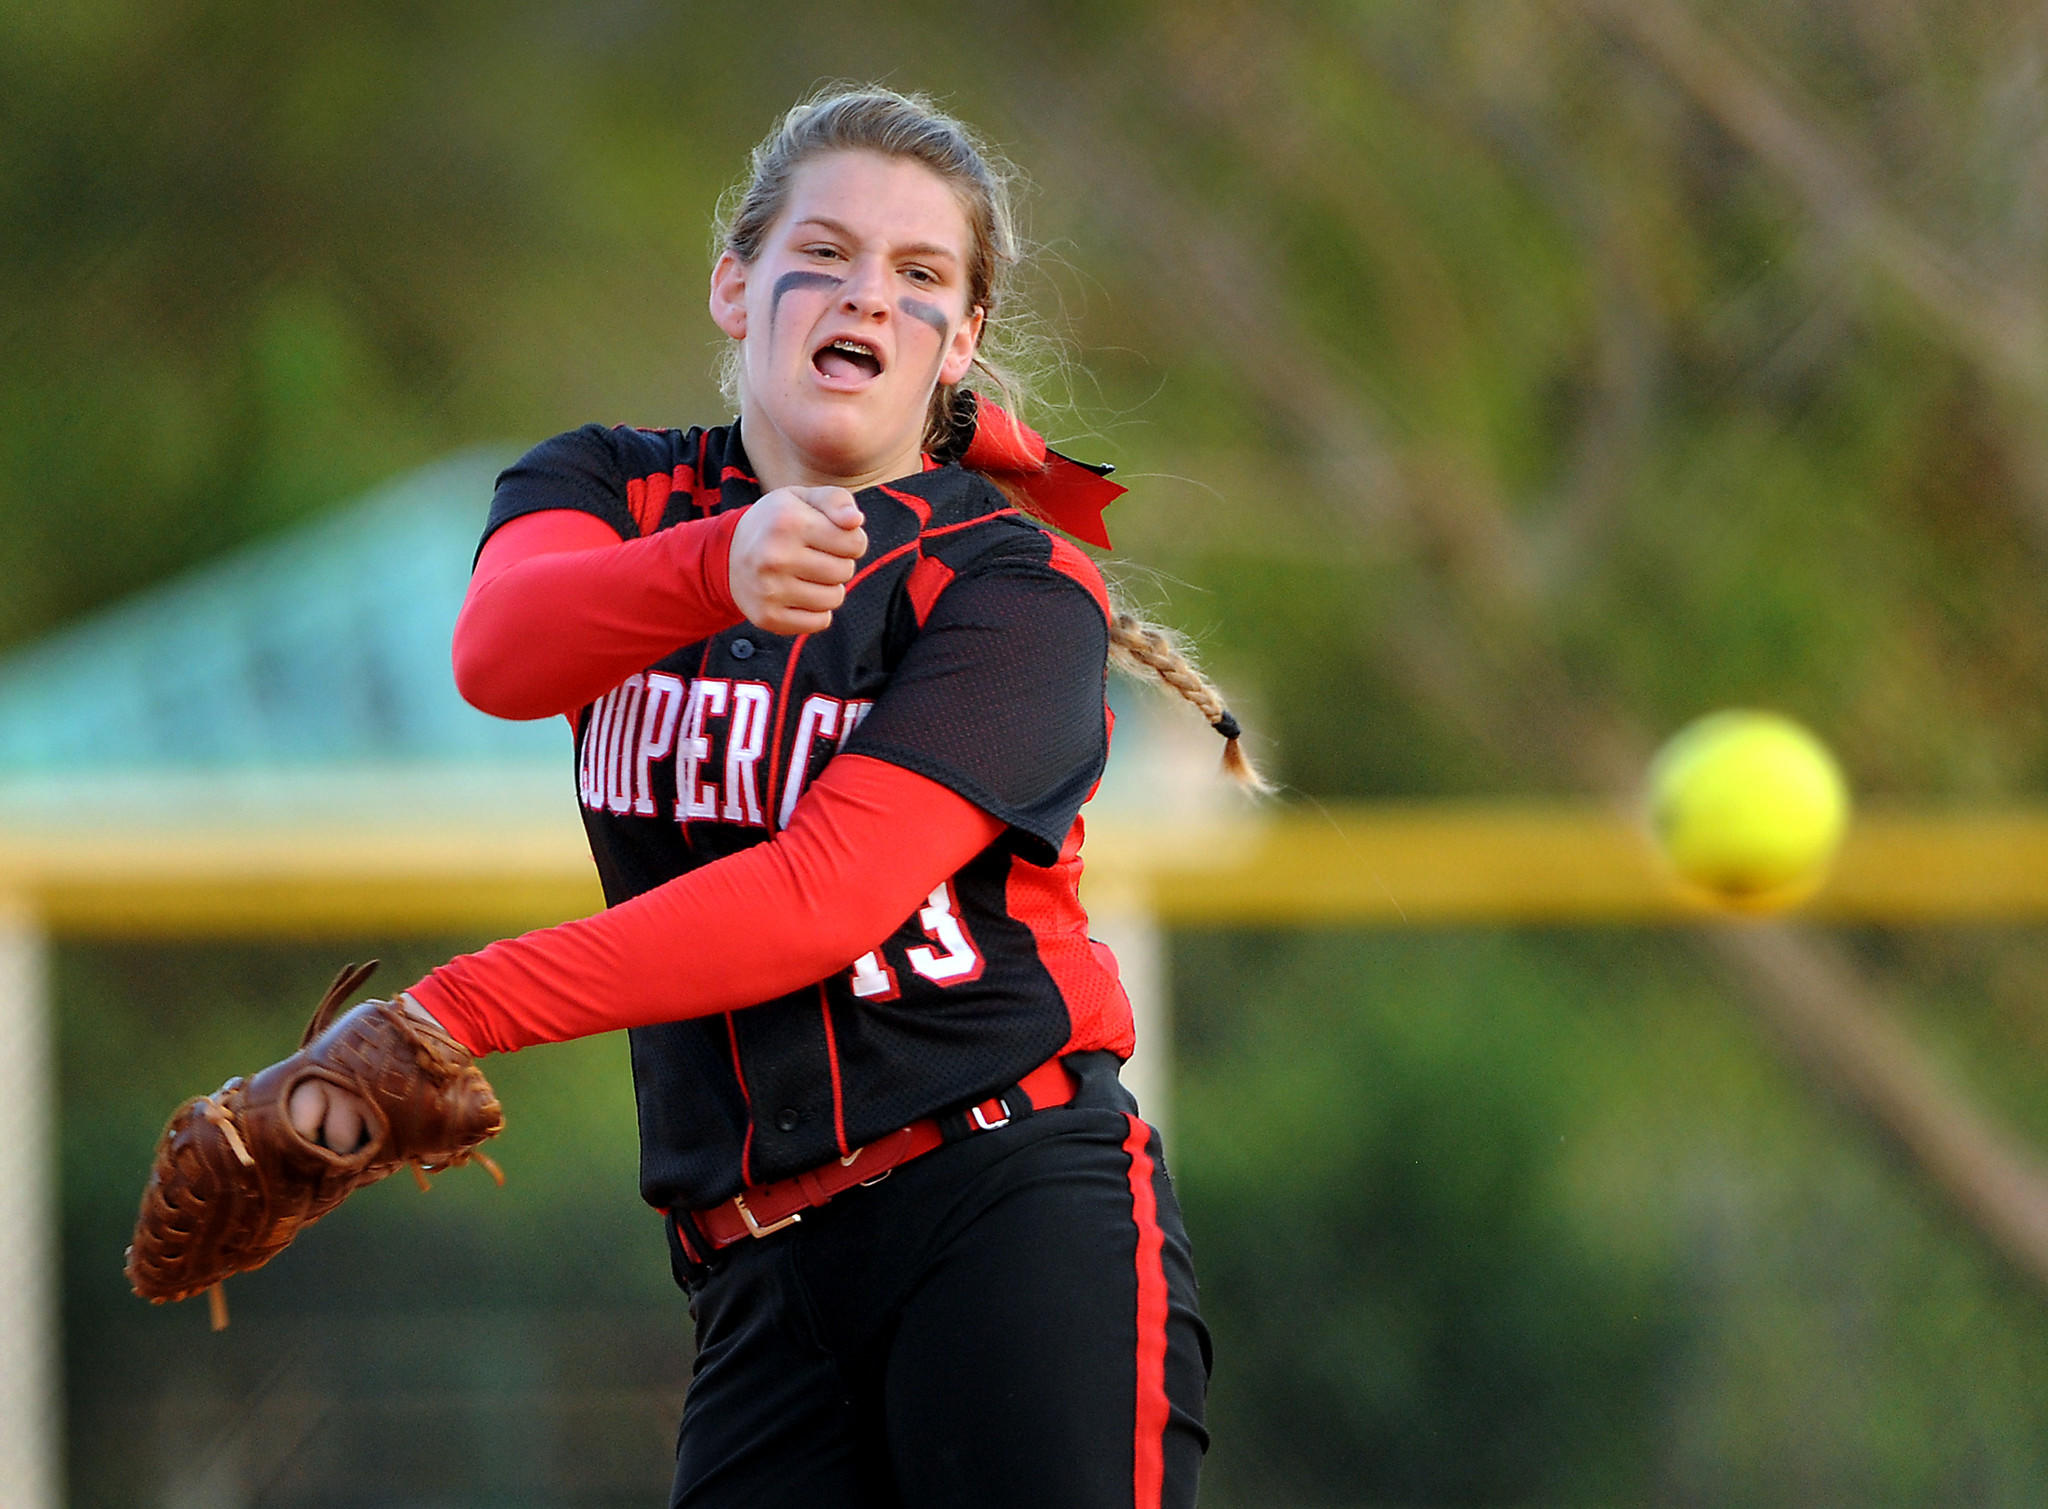 Cooper City pitcher Kara Kara Lokeinsky leads her team to 4-0 victory over Pines Charter Wednesday.